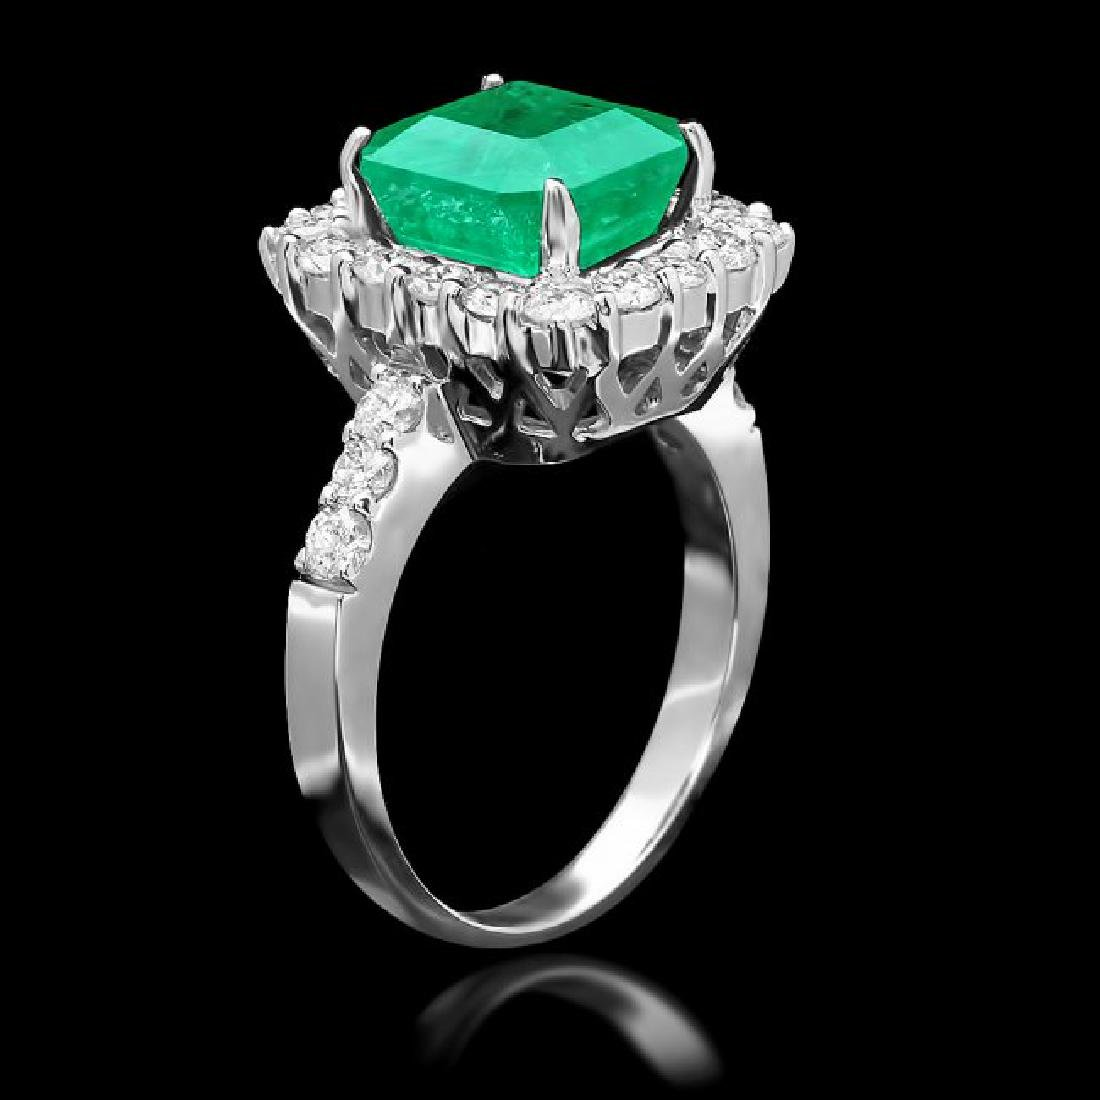 14k White Gold 3.70ct Emerald 1.10ct Diamond Ring